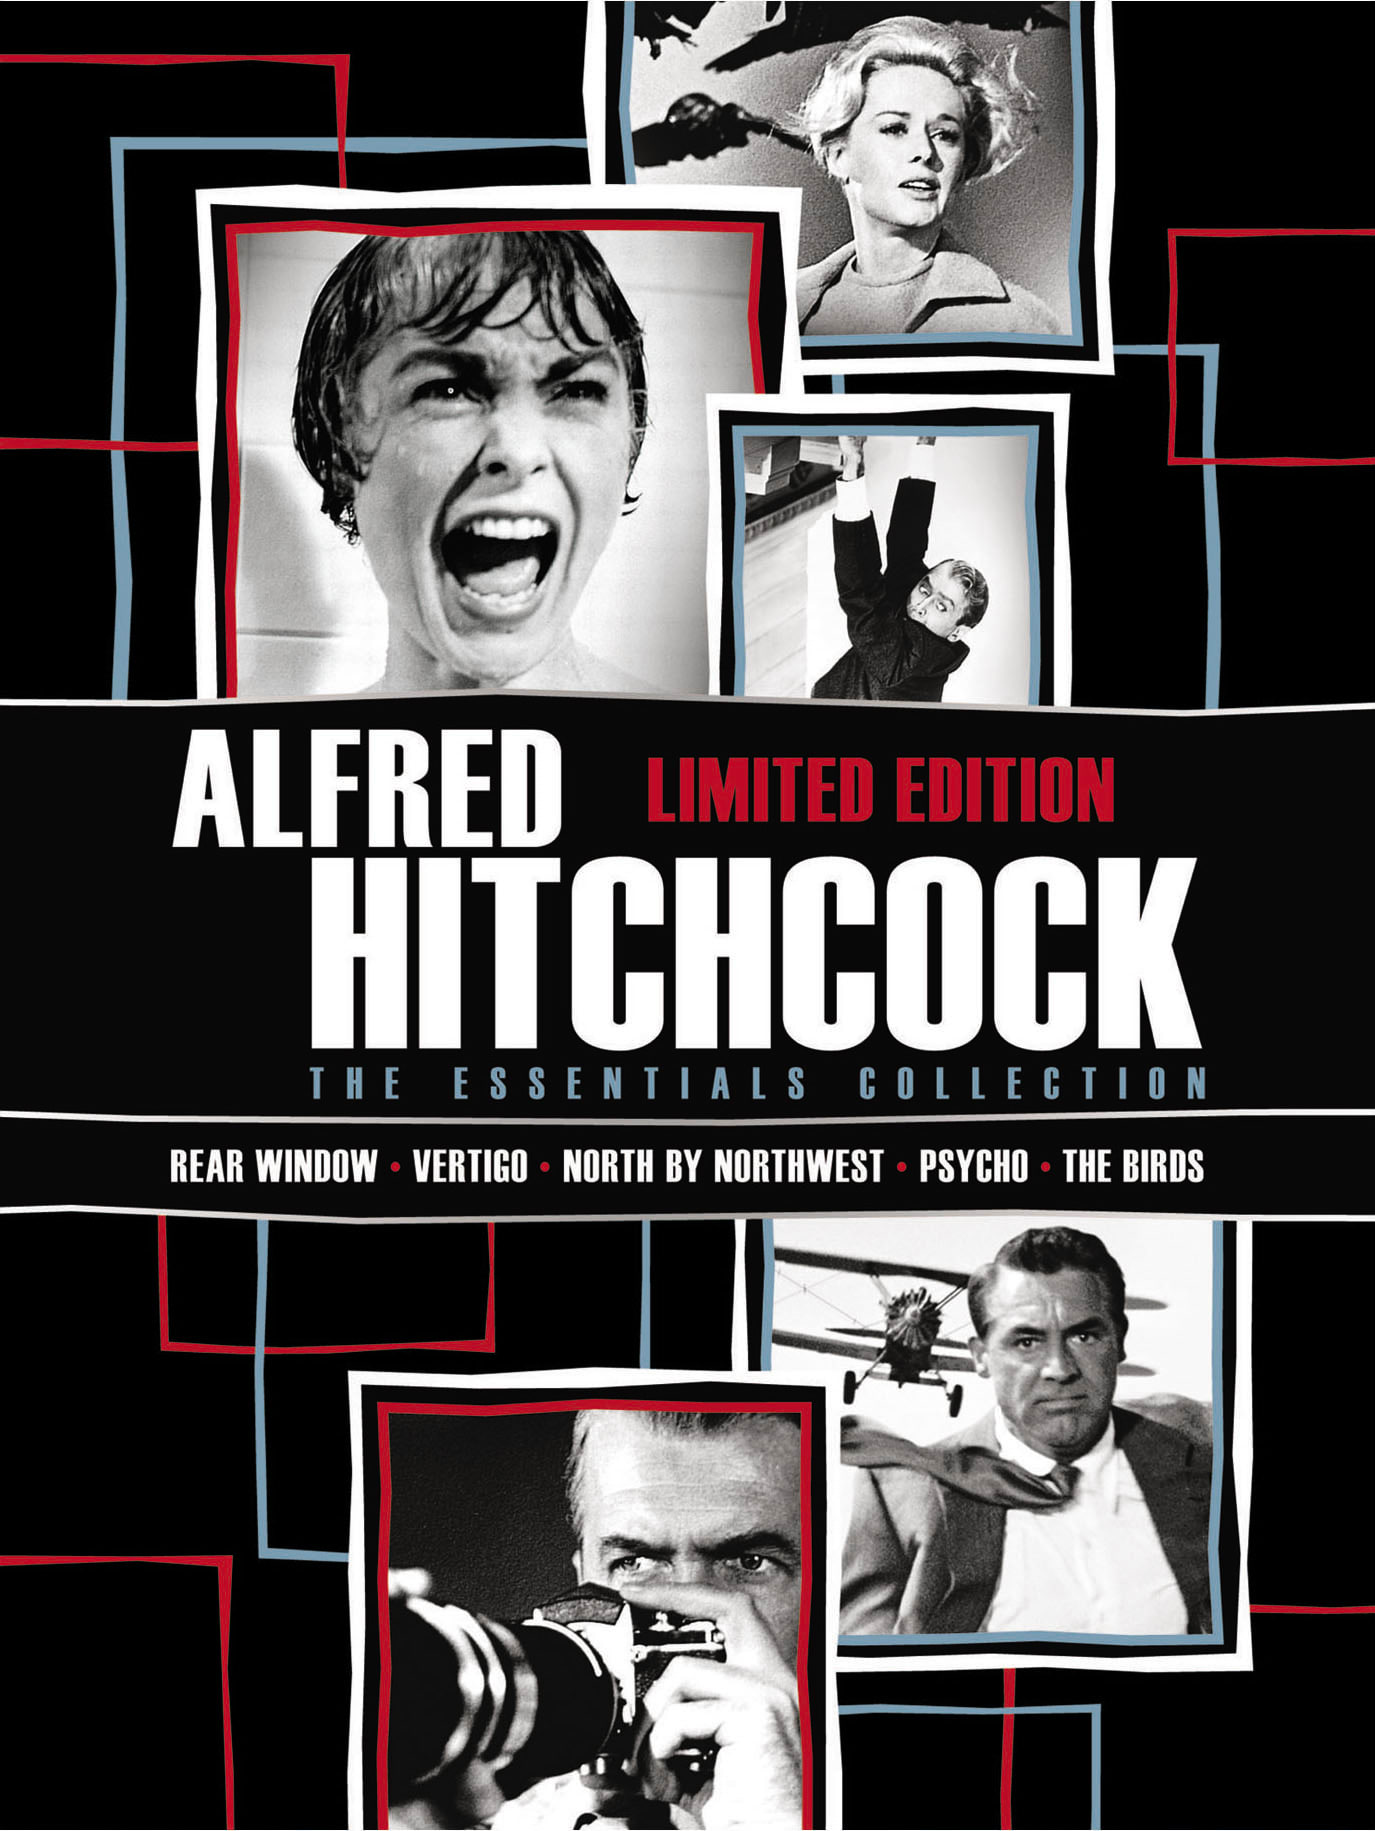 Alfred Hitchcock: The Essentials Collection (Limited Edition Box Set) [DVD]